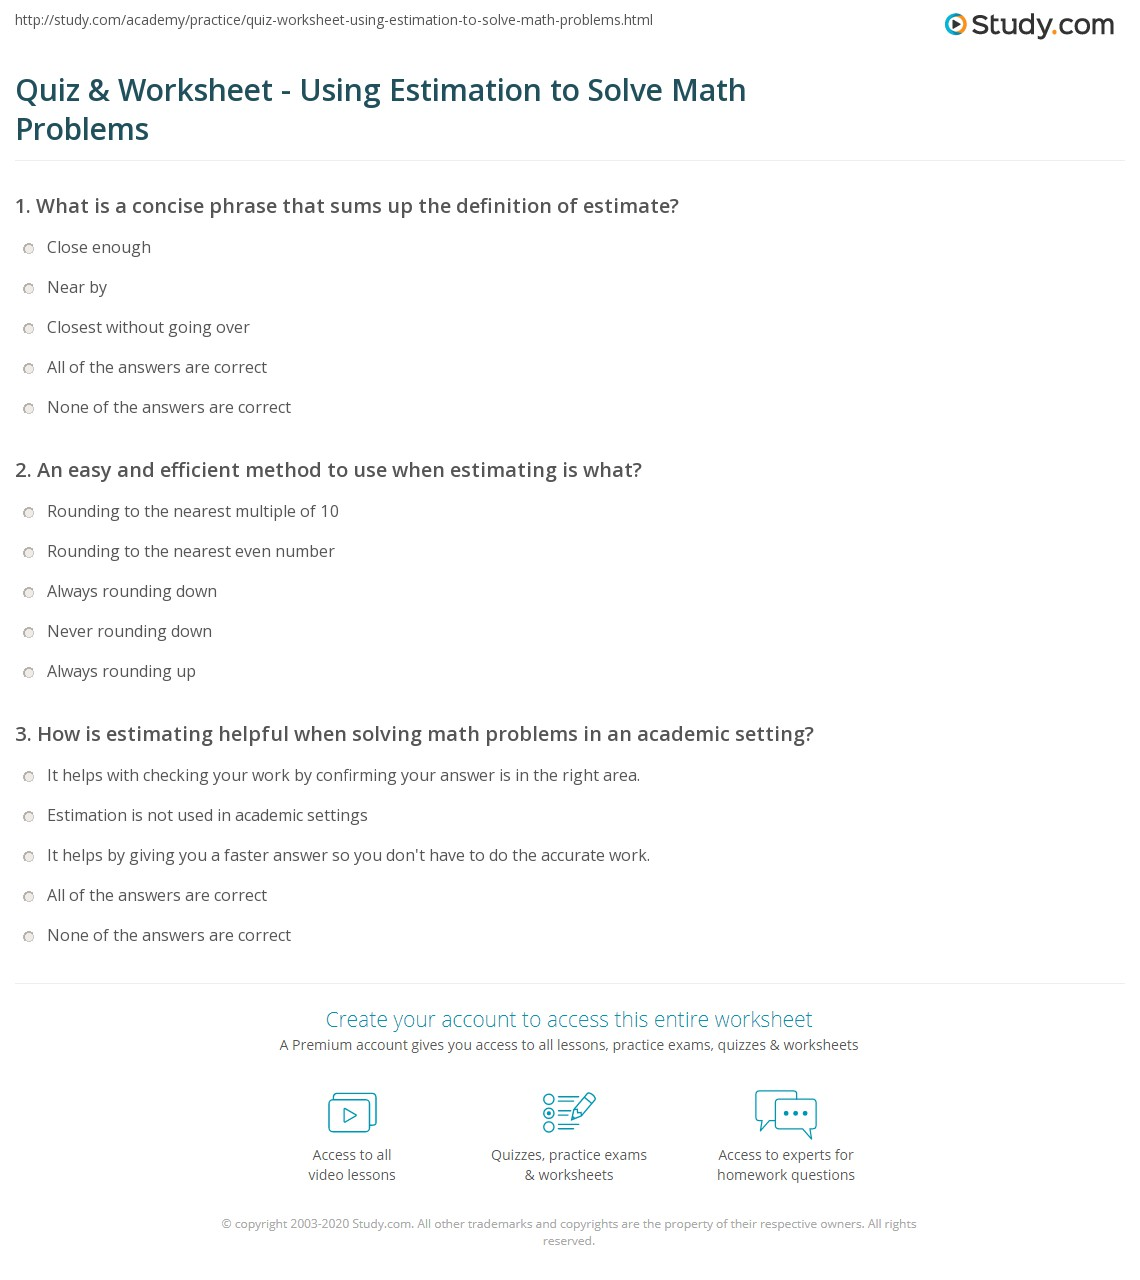 Quiz & Worksheet - Using Estimation to Solve Math Problems | Study.com